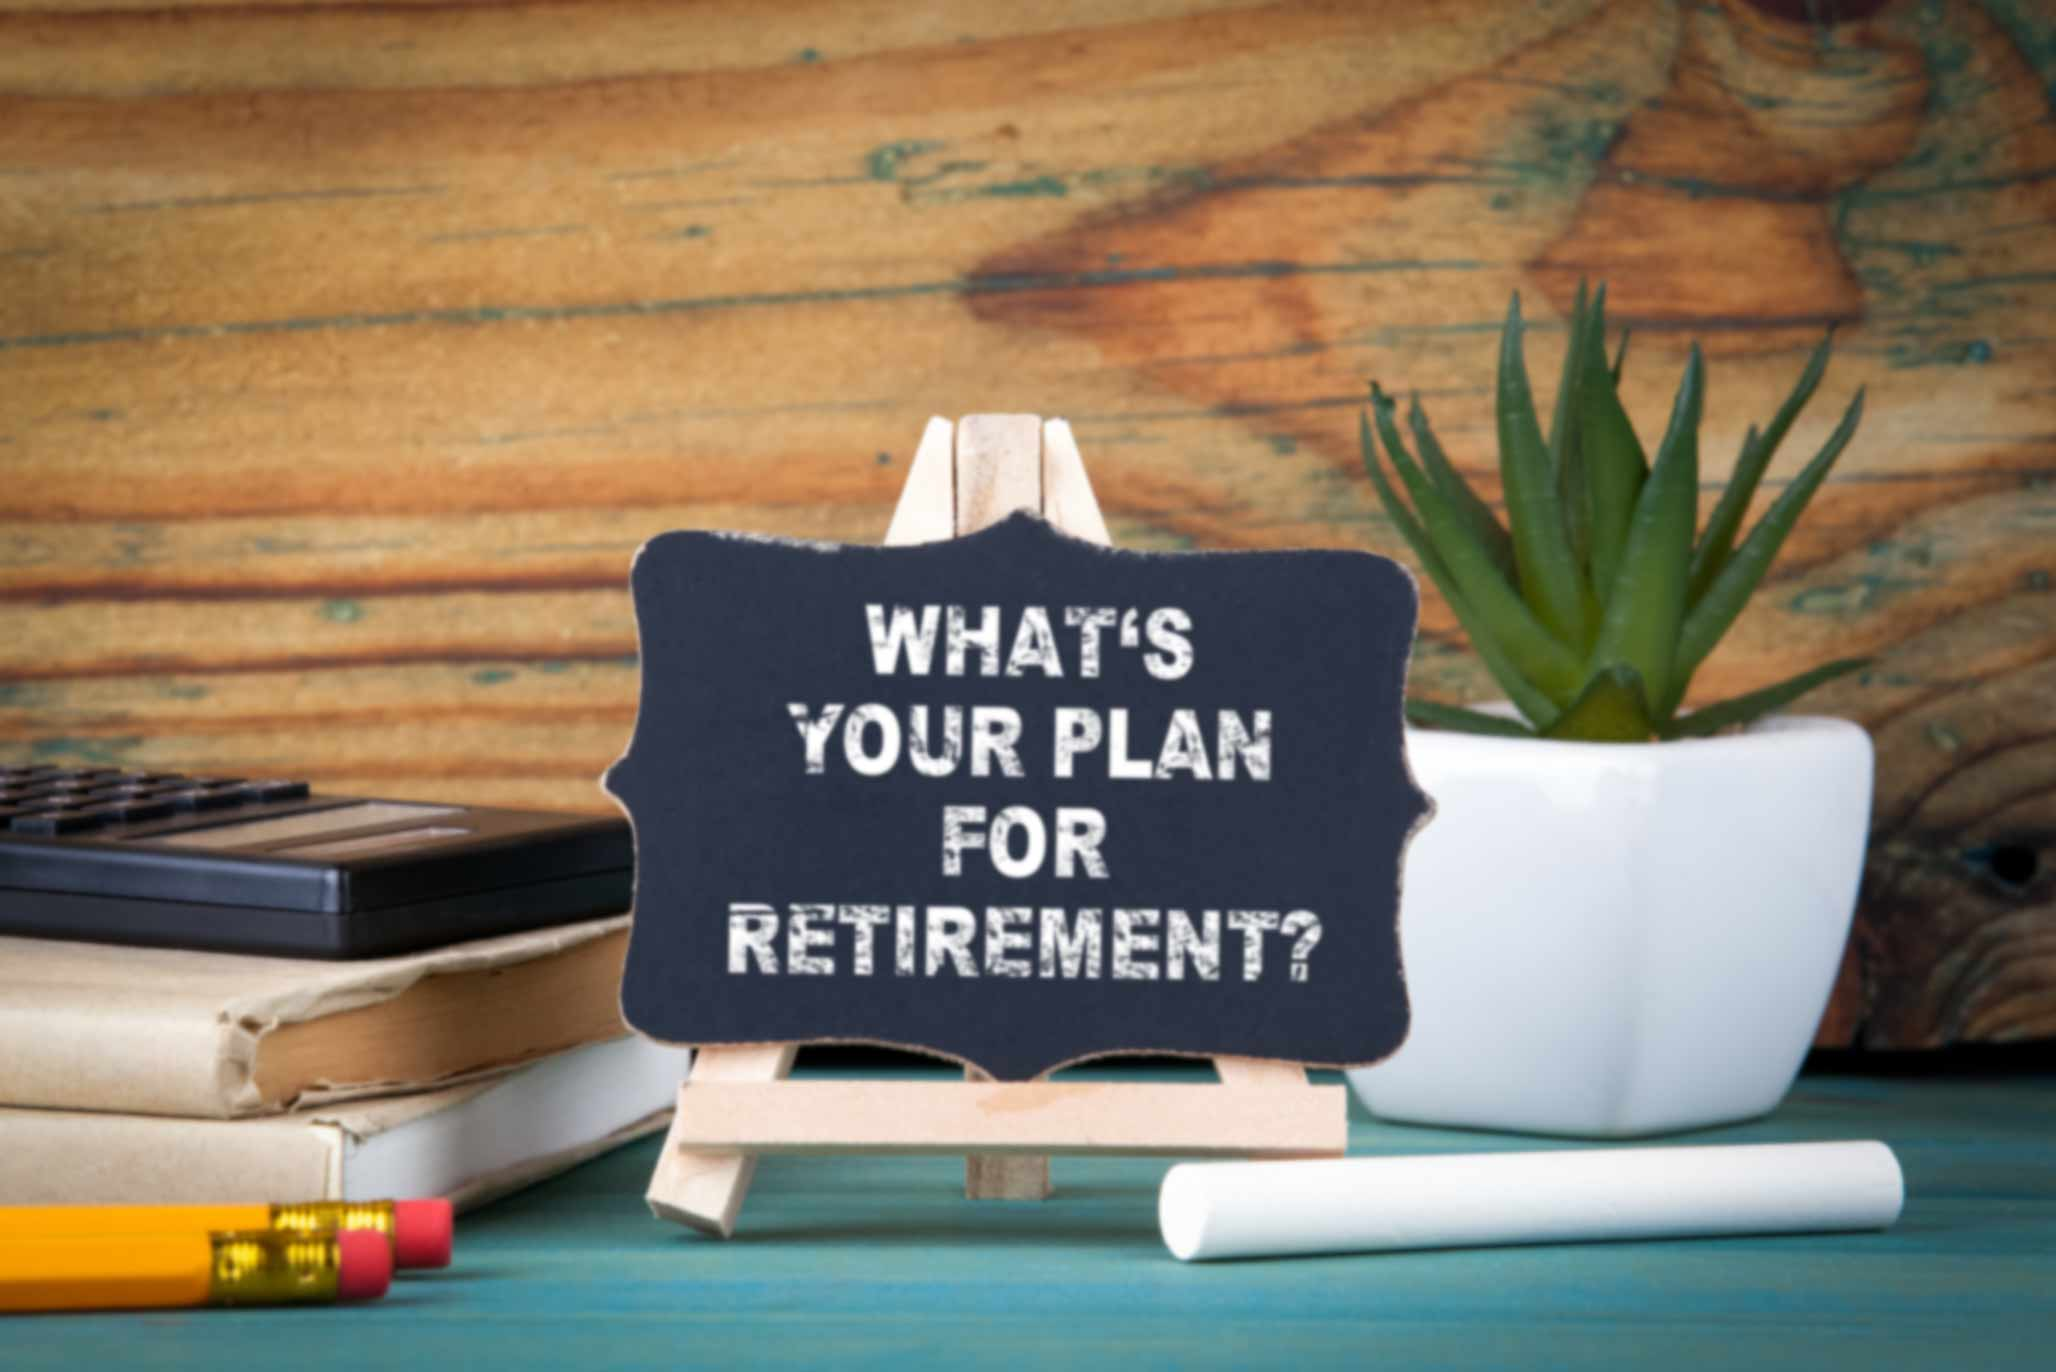 How Insurance helps with Retirement Planning